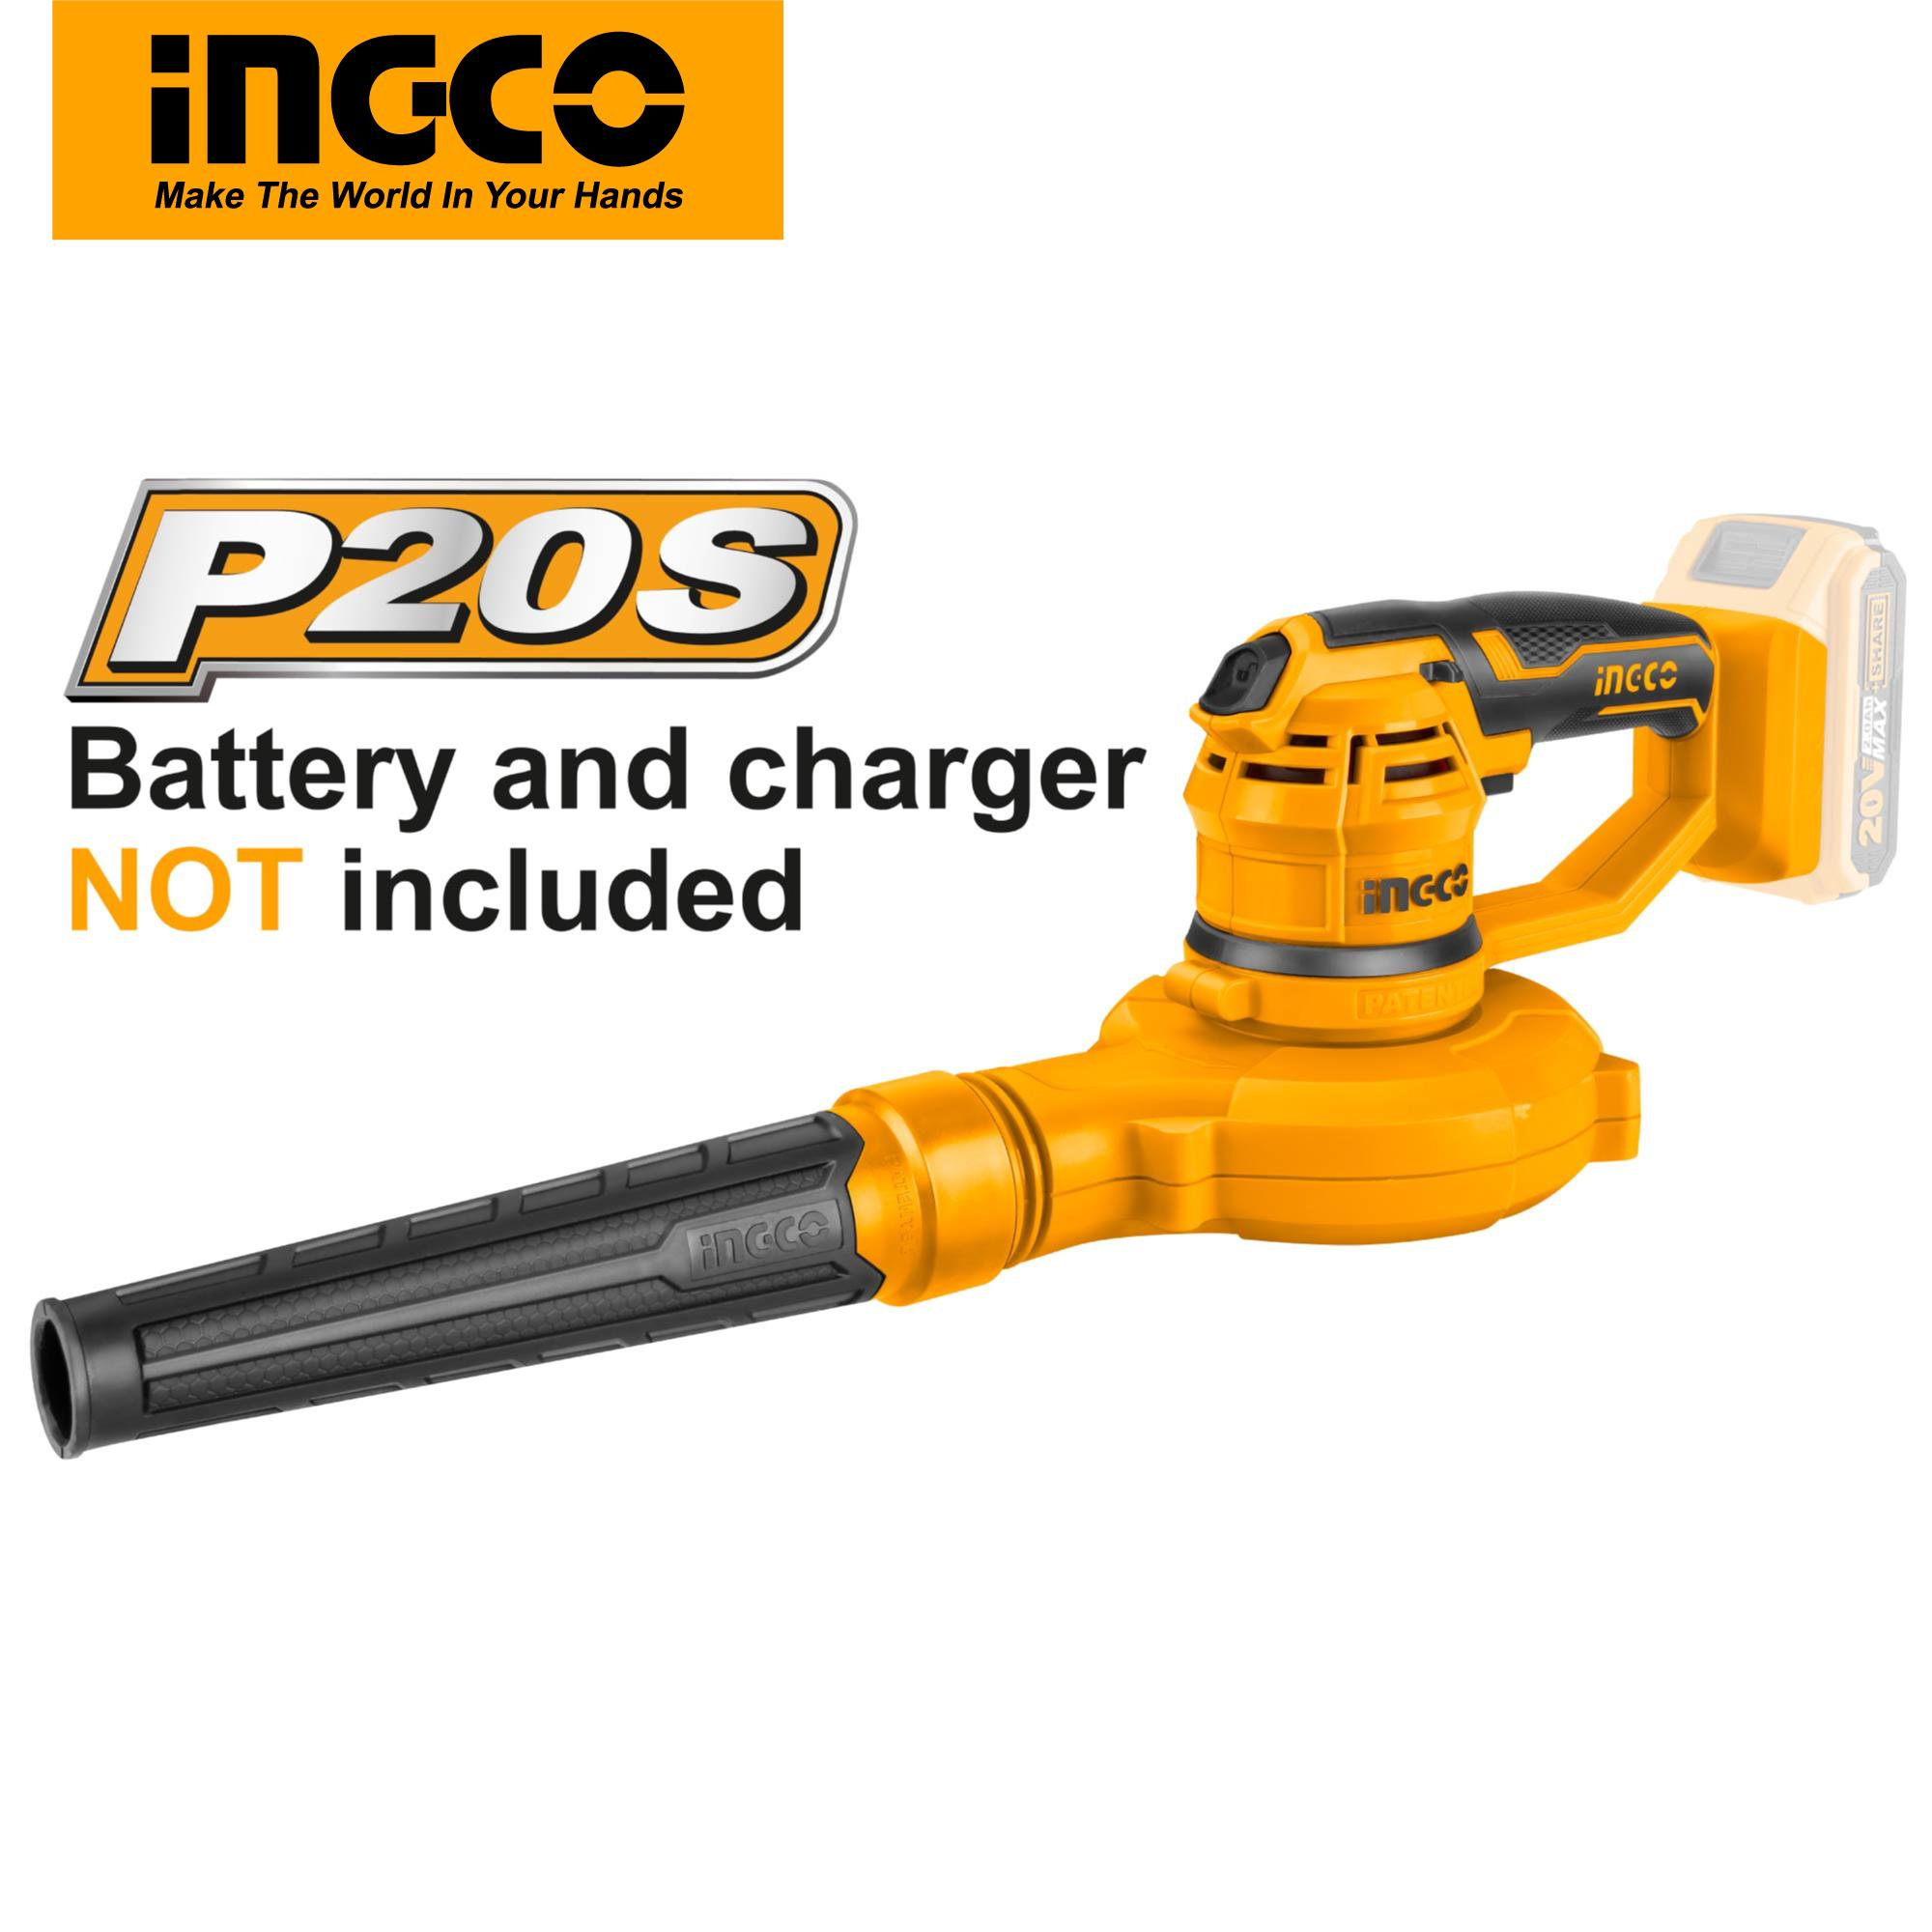 INGCO P20S Power Tools 20V Lithium-Ion Aspirator Blower CABLI2001 (Body Only)